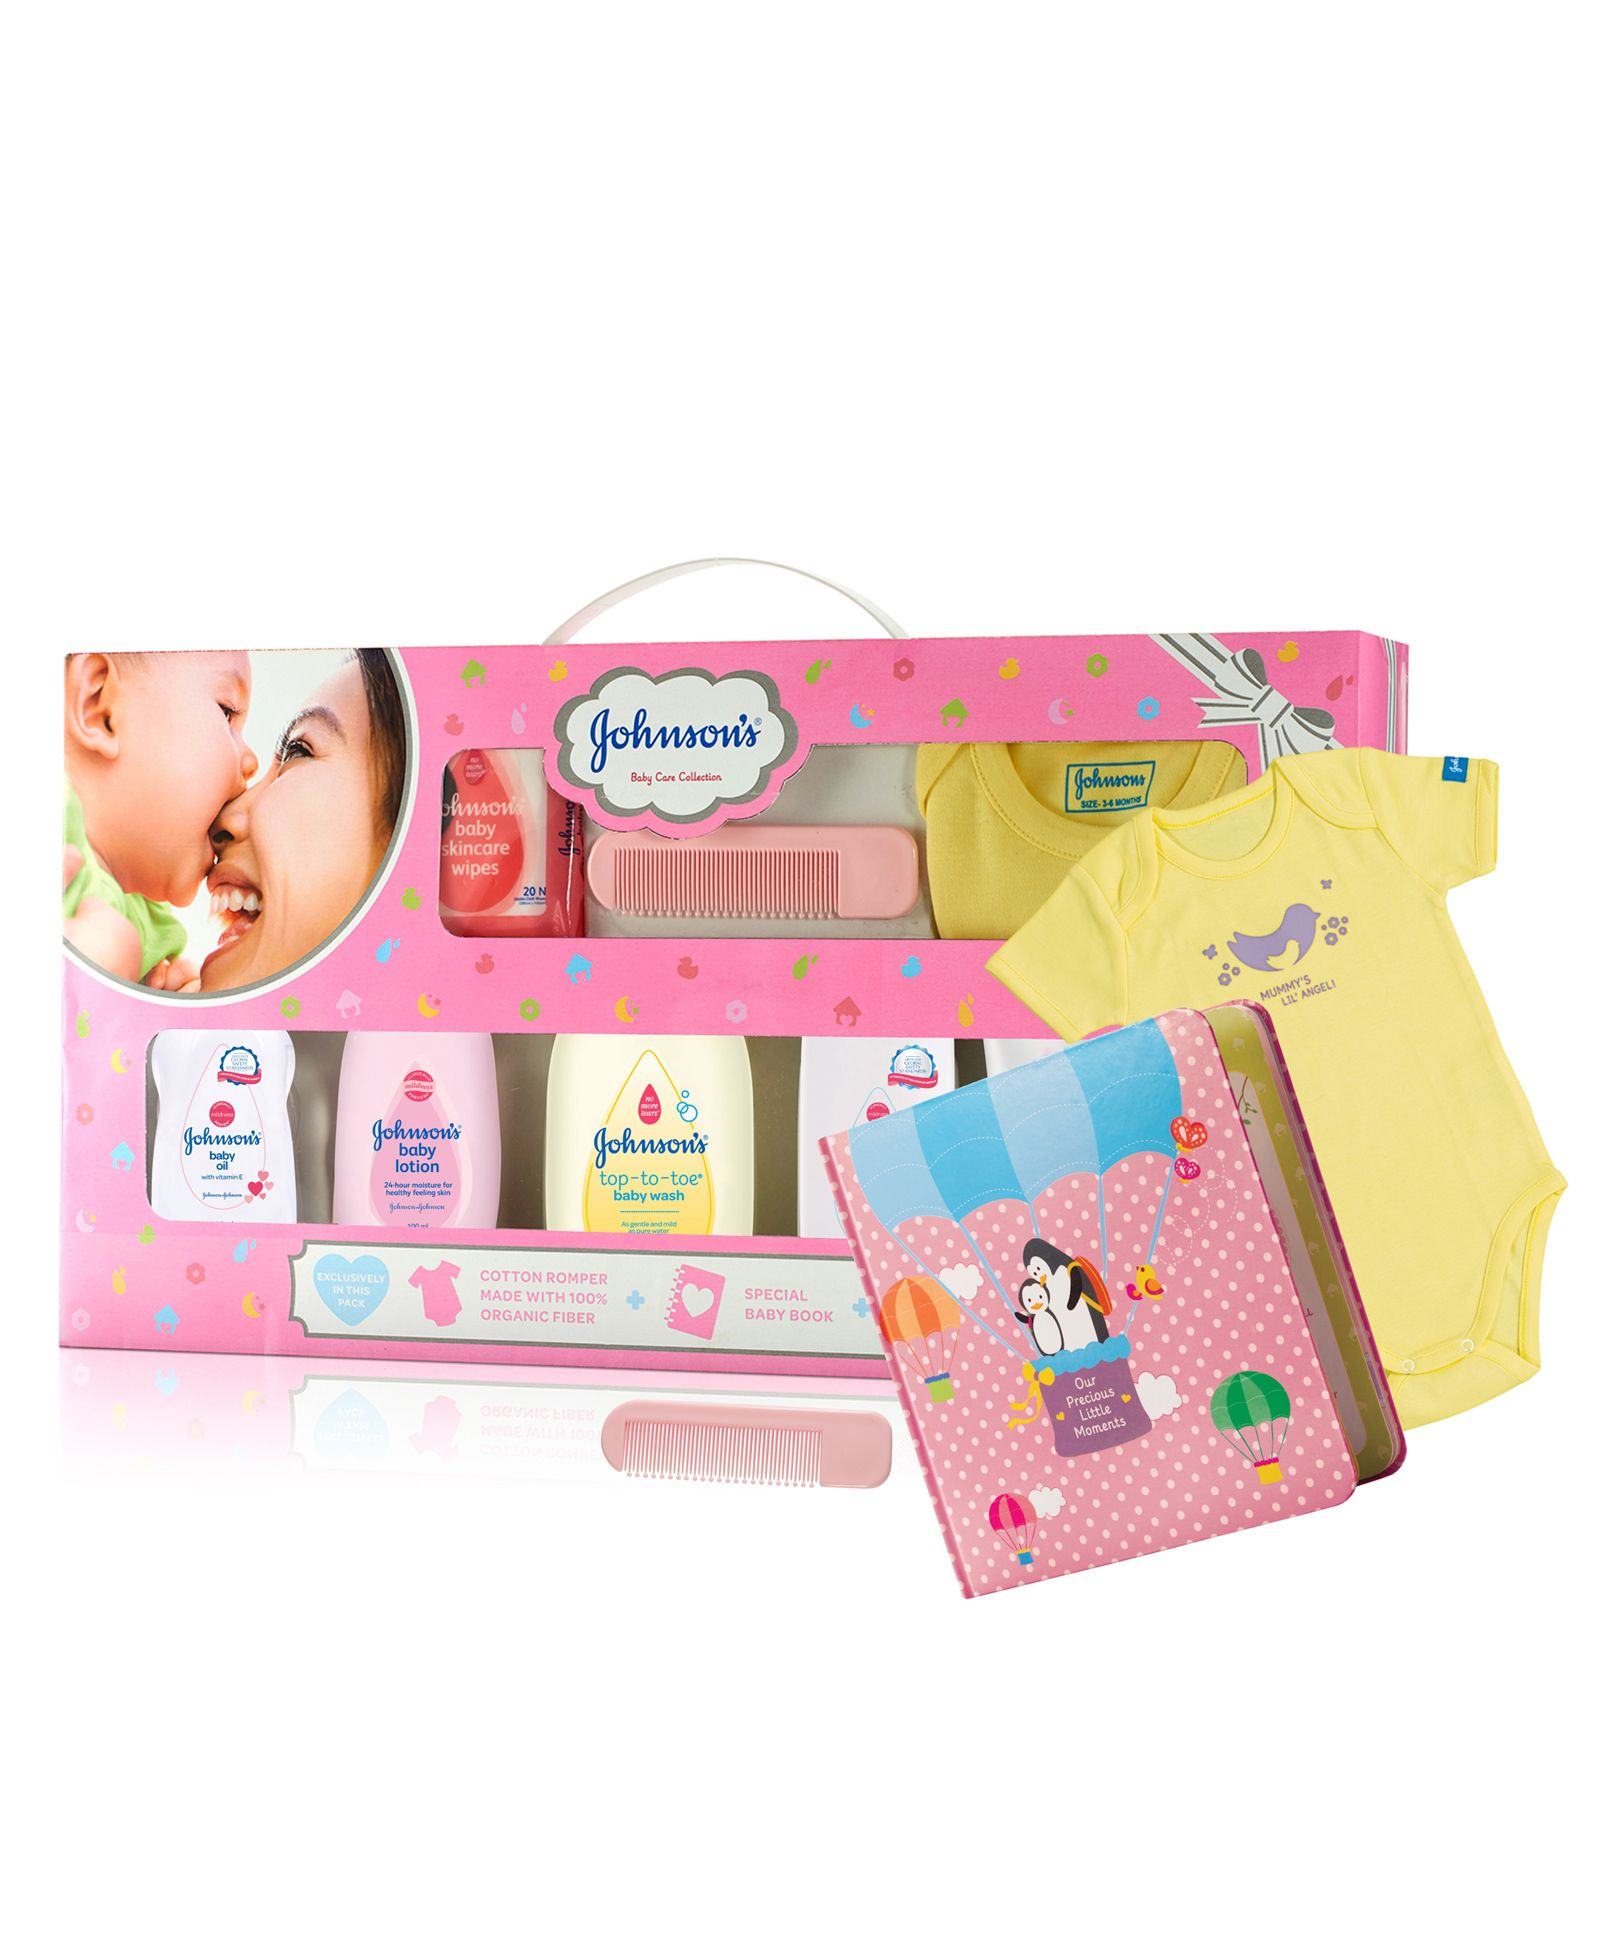 Johnsons baby Care Collection With Organic Cotton Baby Romper & Milestone  Book 11 Gift Items for Both (0-24 Months) Online in India, Buy at